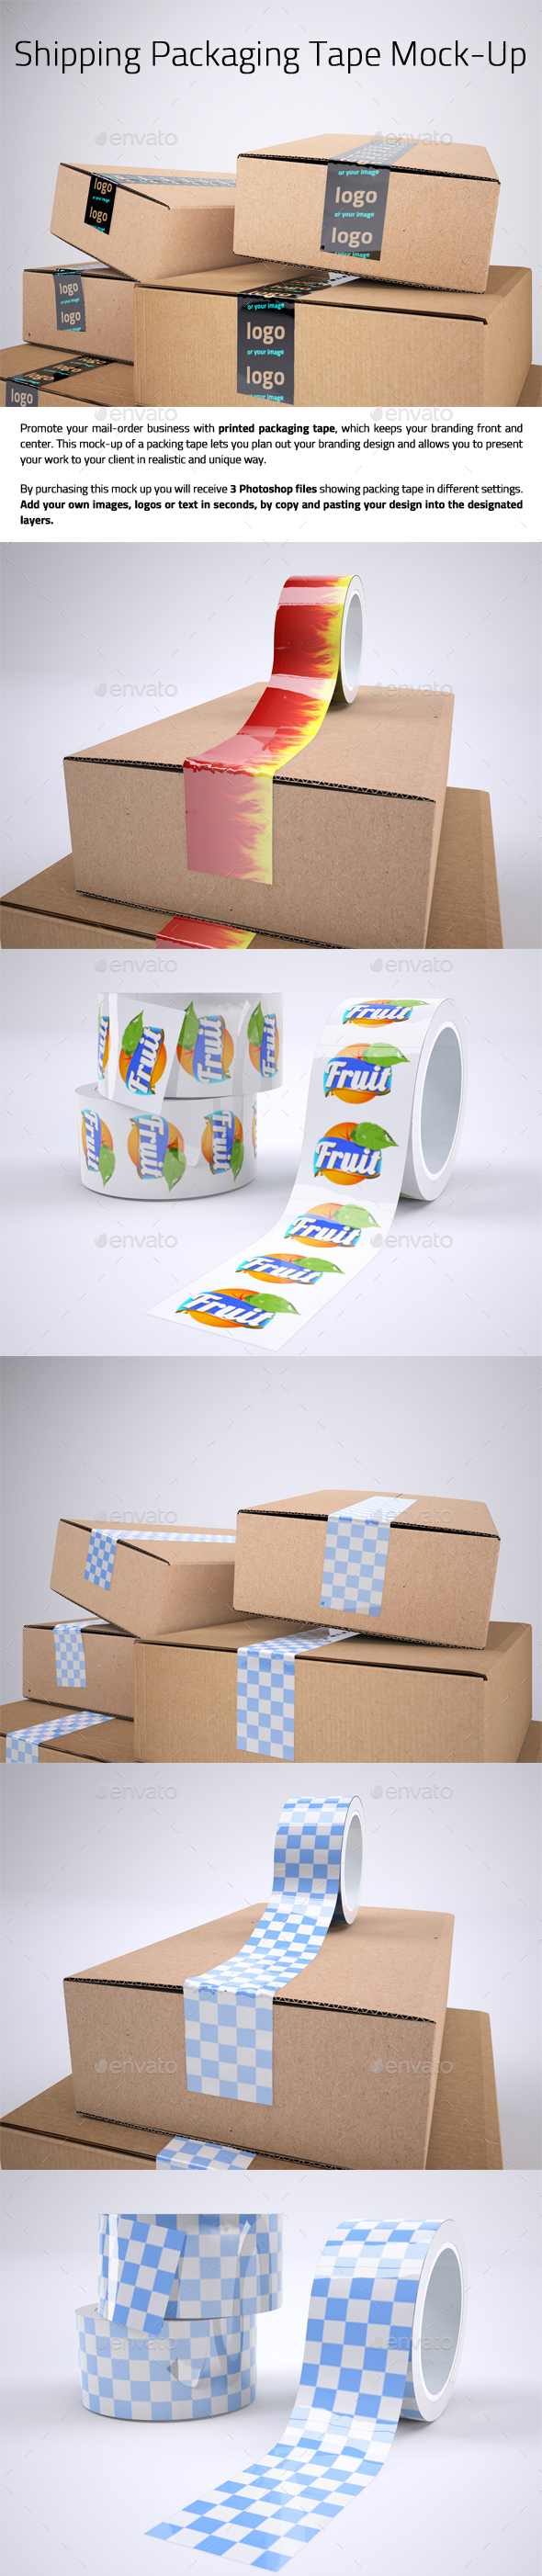 Shipping Packaging Tape Mock-Up - Packaging Product Mock-Ups